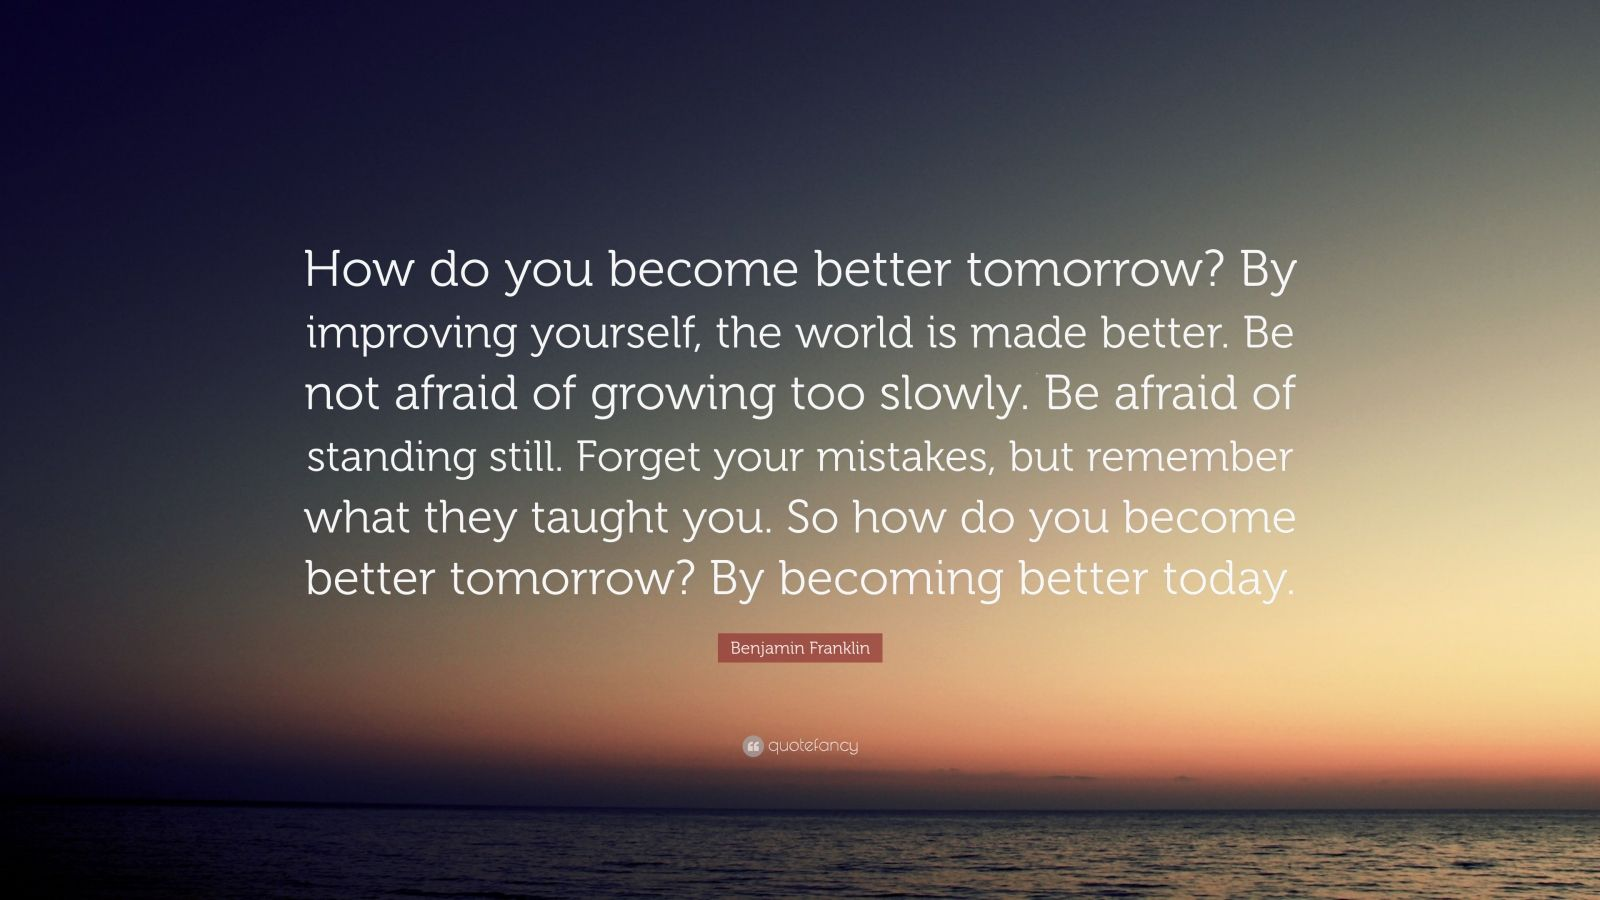 "Benjamin Franklin Quote: ""How do you become better tomorrow? By improving yourself, the world is made better. Be not afraid of growing too slowly. Be afraid of standing still. Forget your mistakes, but remember what they taught you. So how do you become better tomorrow? By becoming better today."""